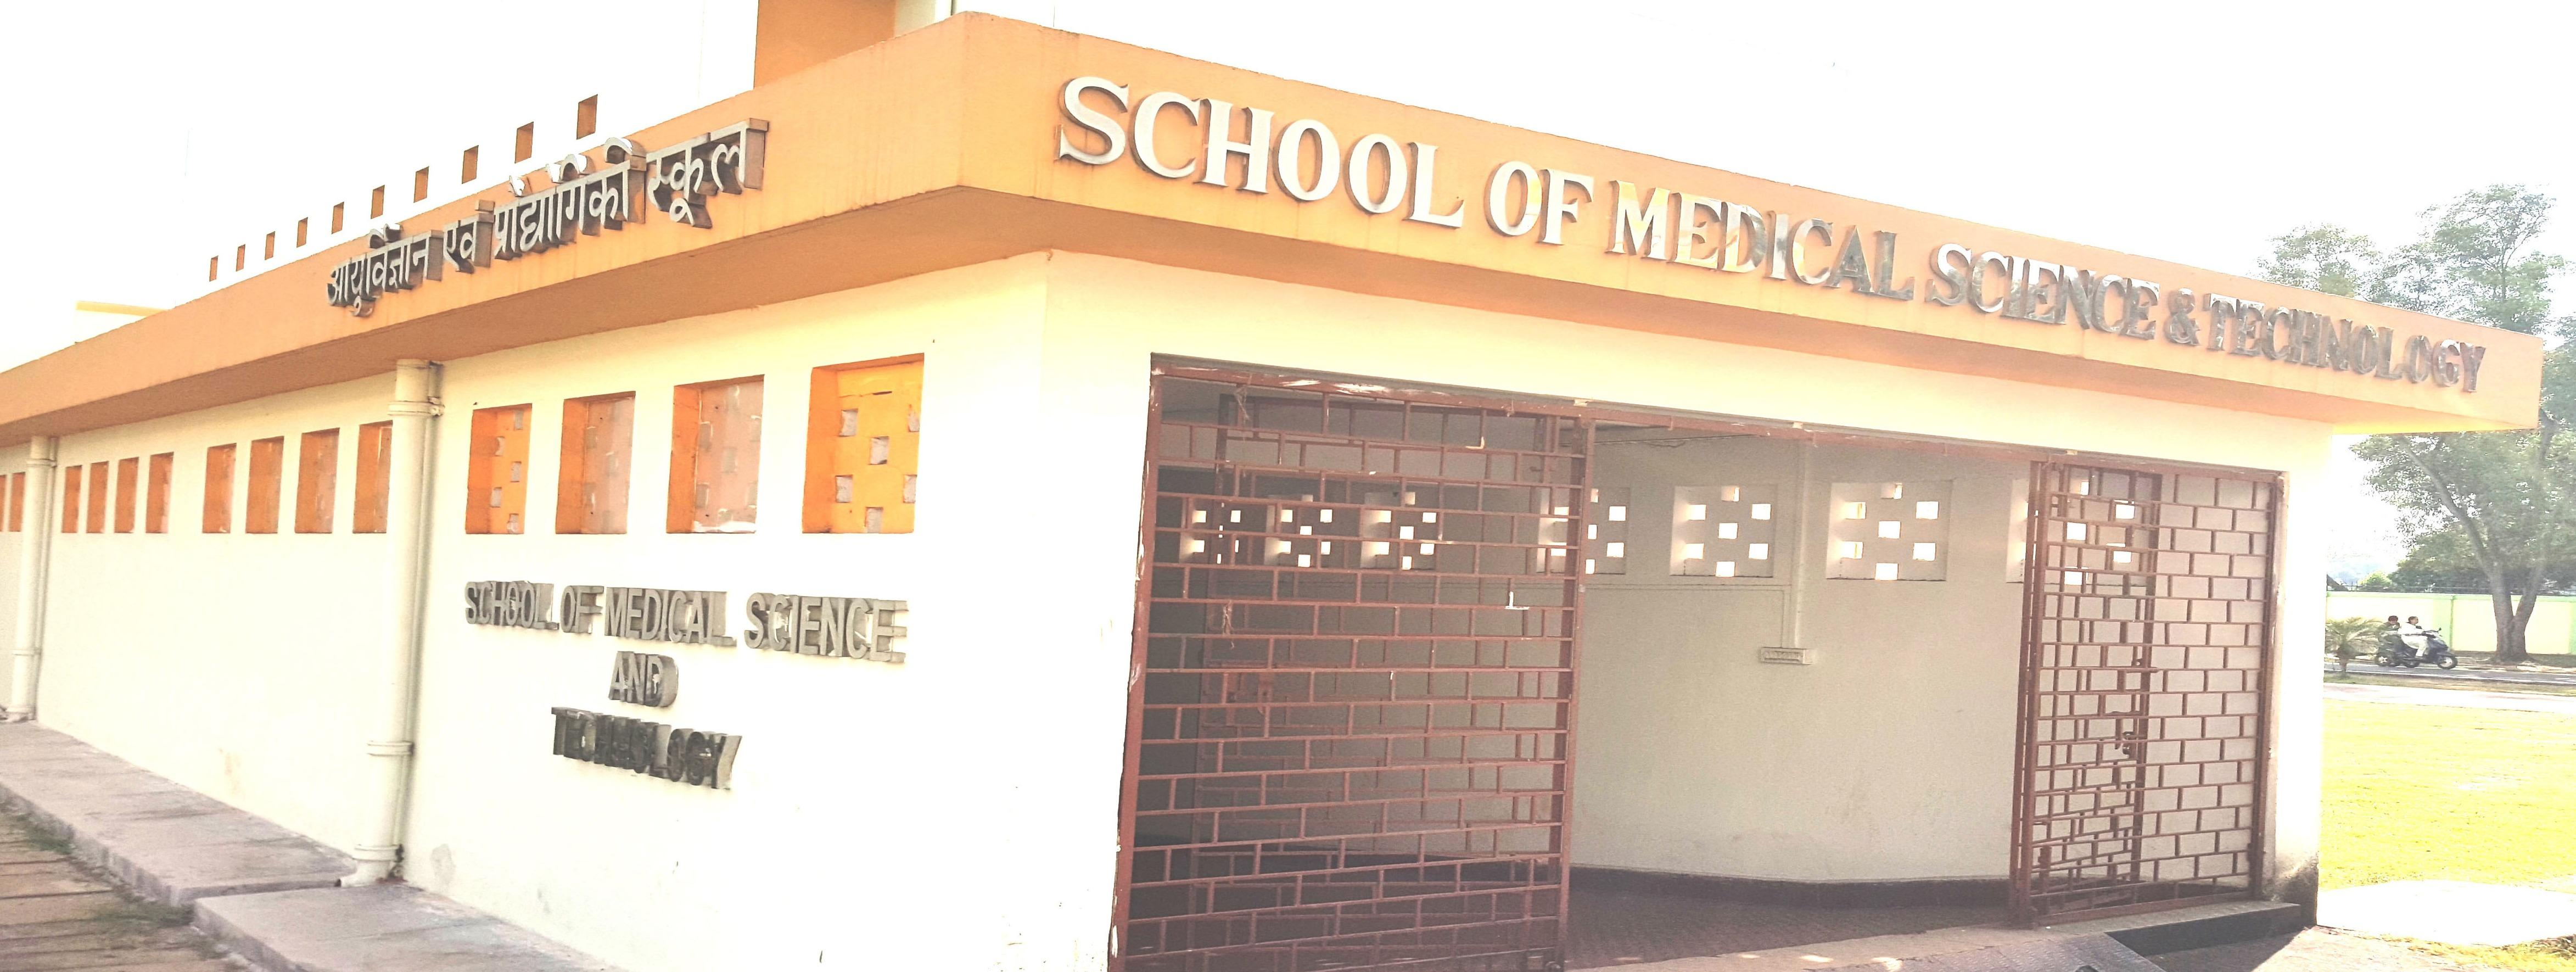 school-of-medical-science-and-technology